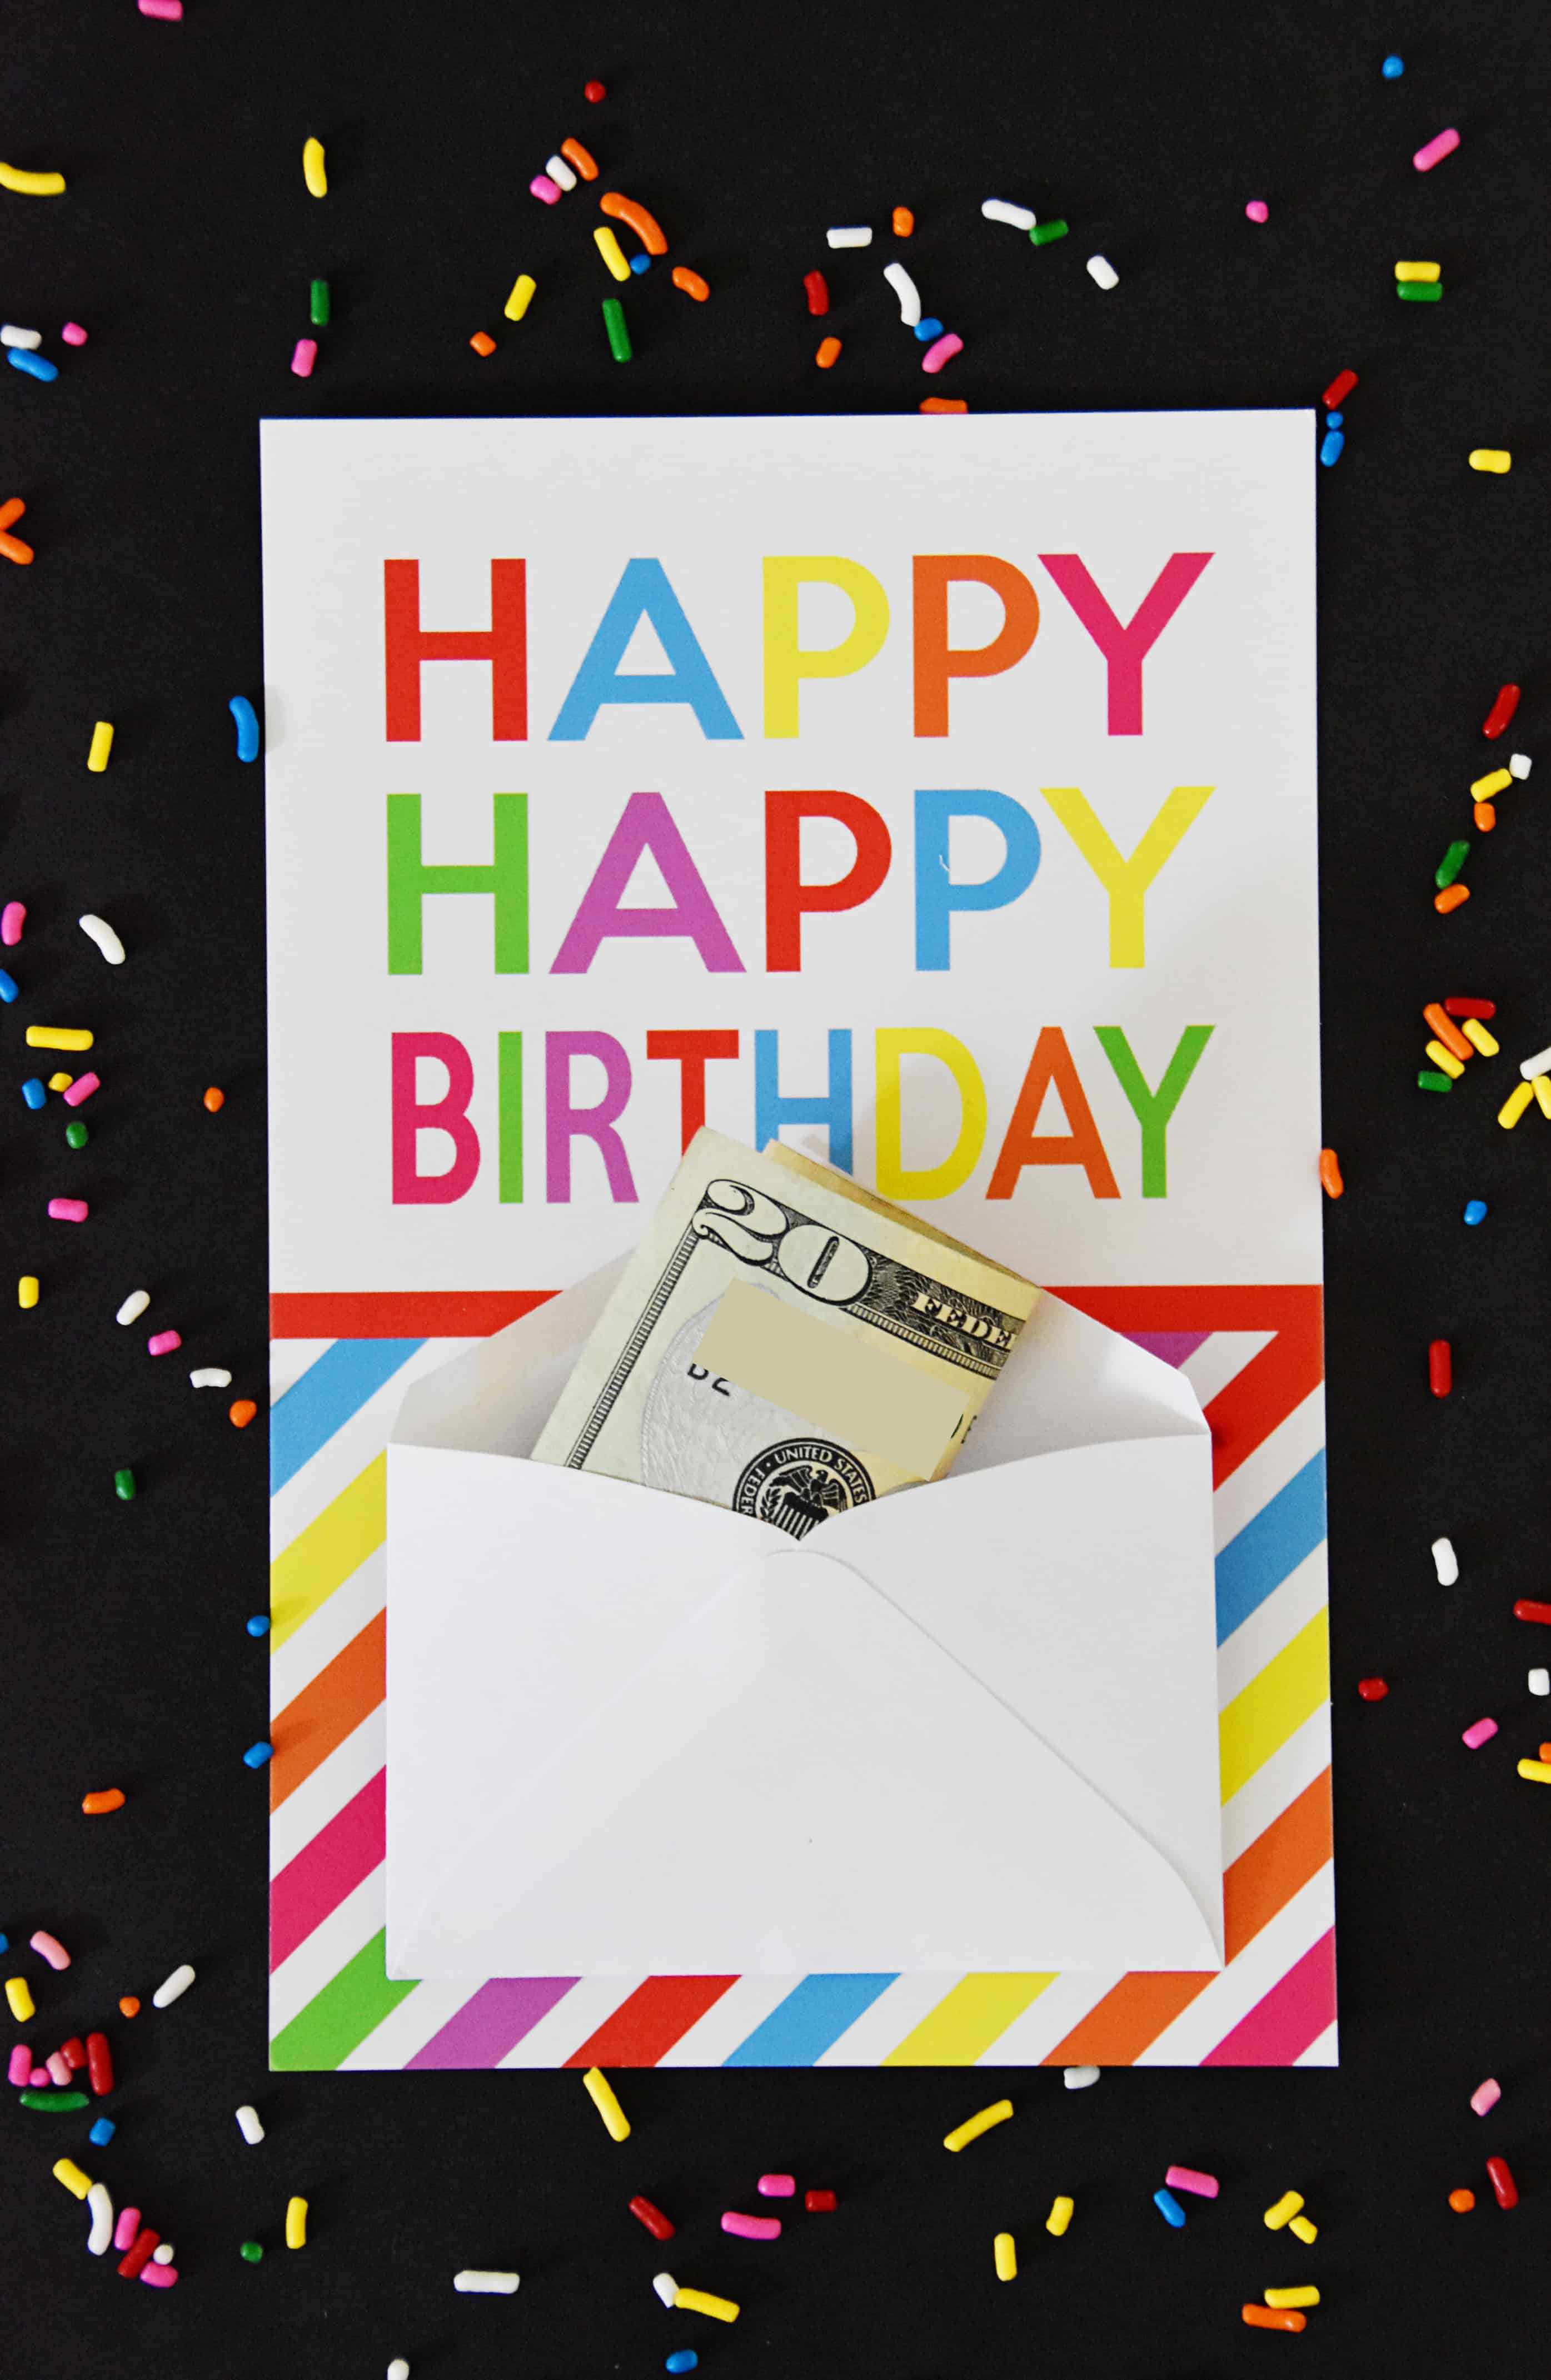 Dixie delights shop spring opening new birthday cards birthday it is the perfect size for a gift card or few bills it also includes the white outer envelope these are not available personalized bookmarktalkfo Choice Image